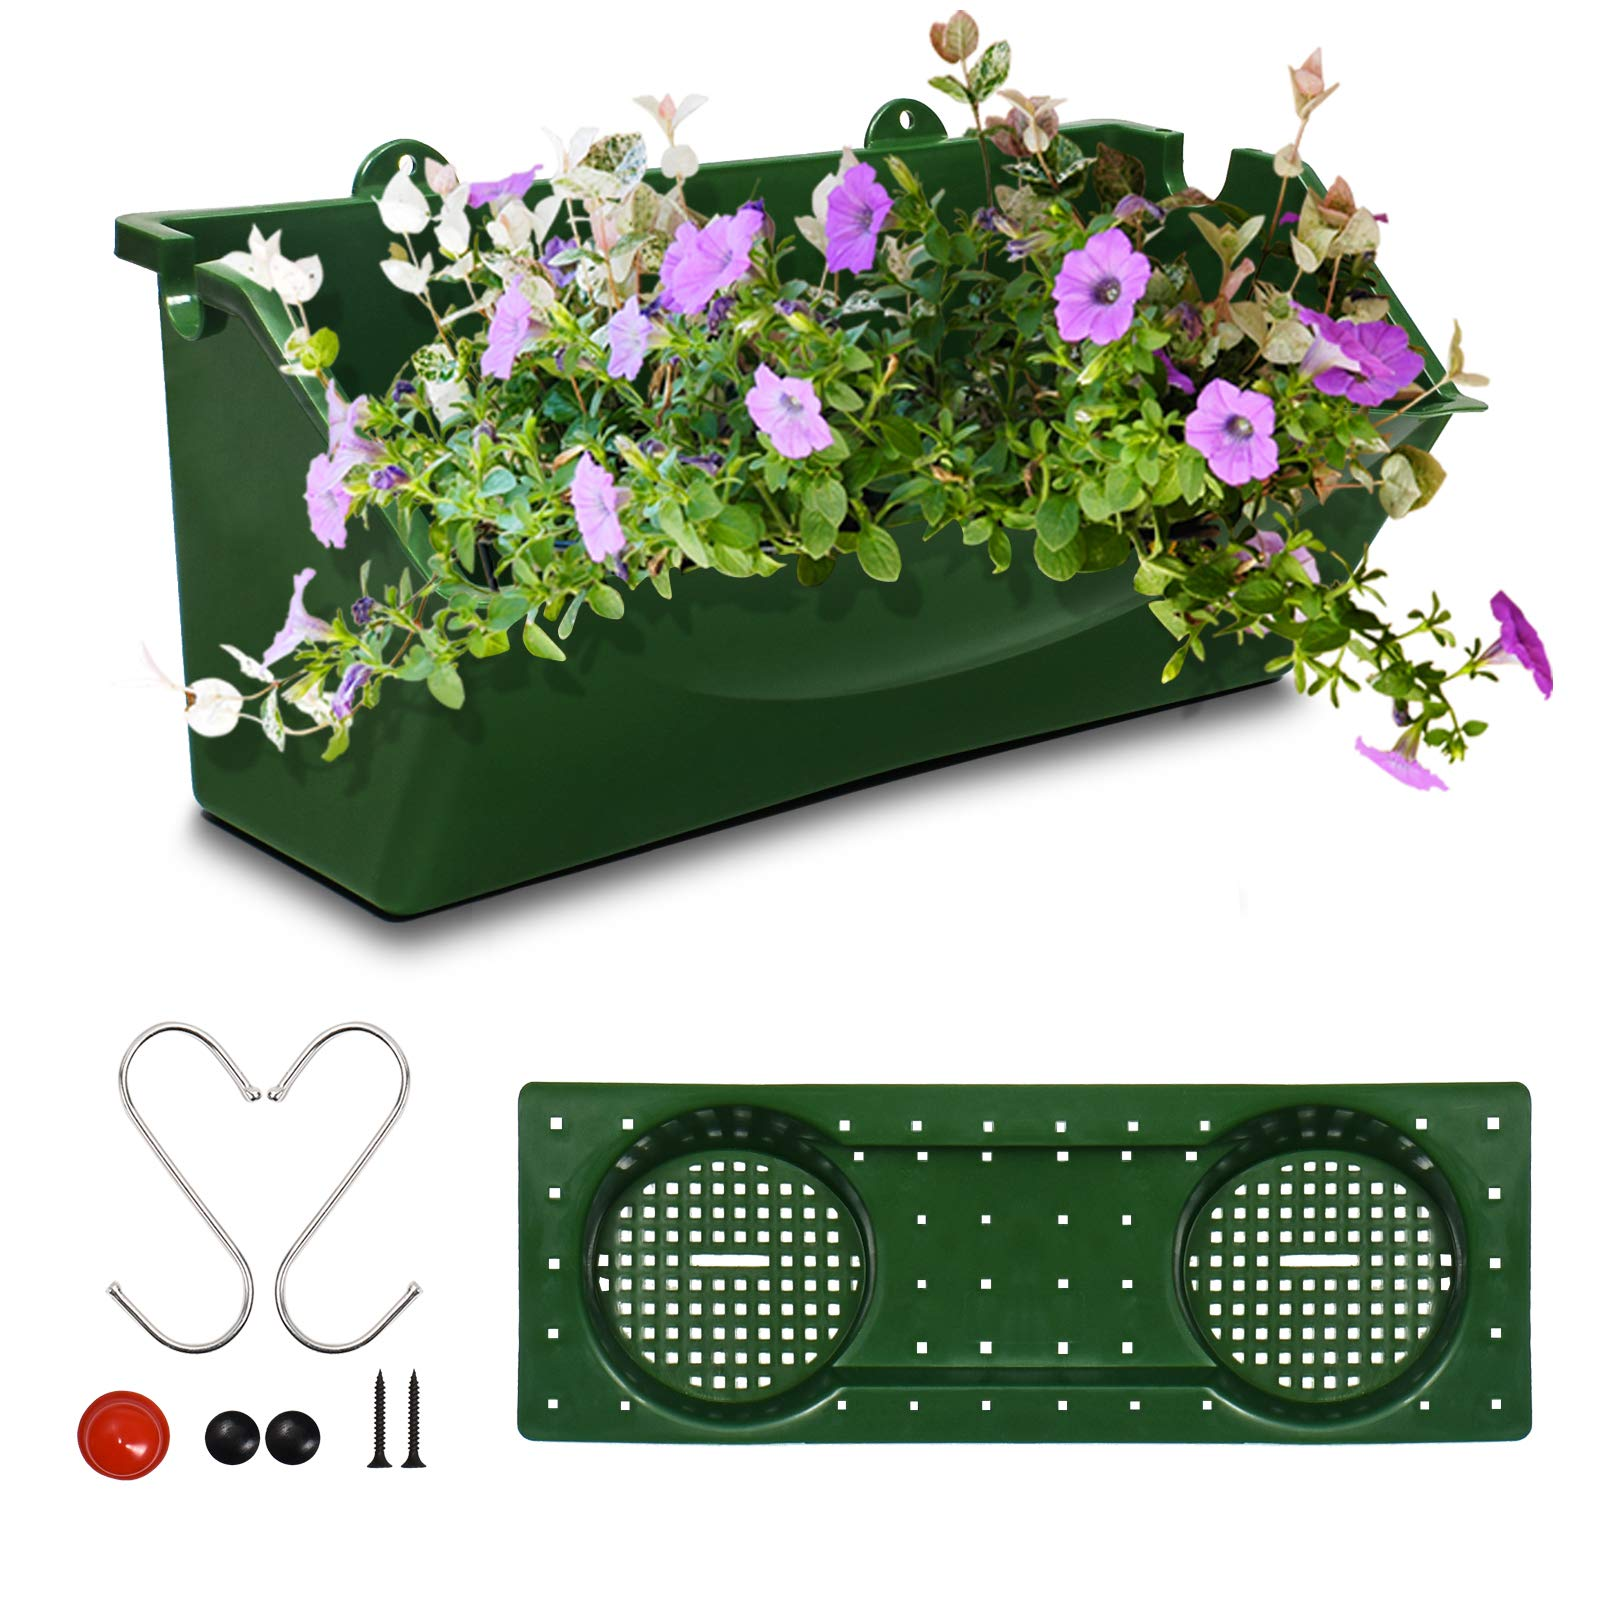 KORAM 12-inch Vertical Garden Planter Wall Mount Hanging Flower Box Living Wall Planter Plant Pots with S Shaped Hooks for Balcony Window Vegetable Gardens,1-pack